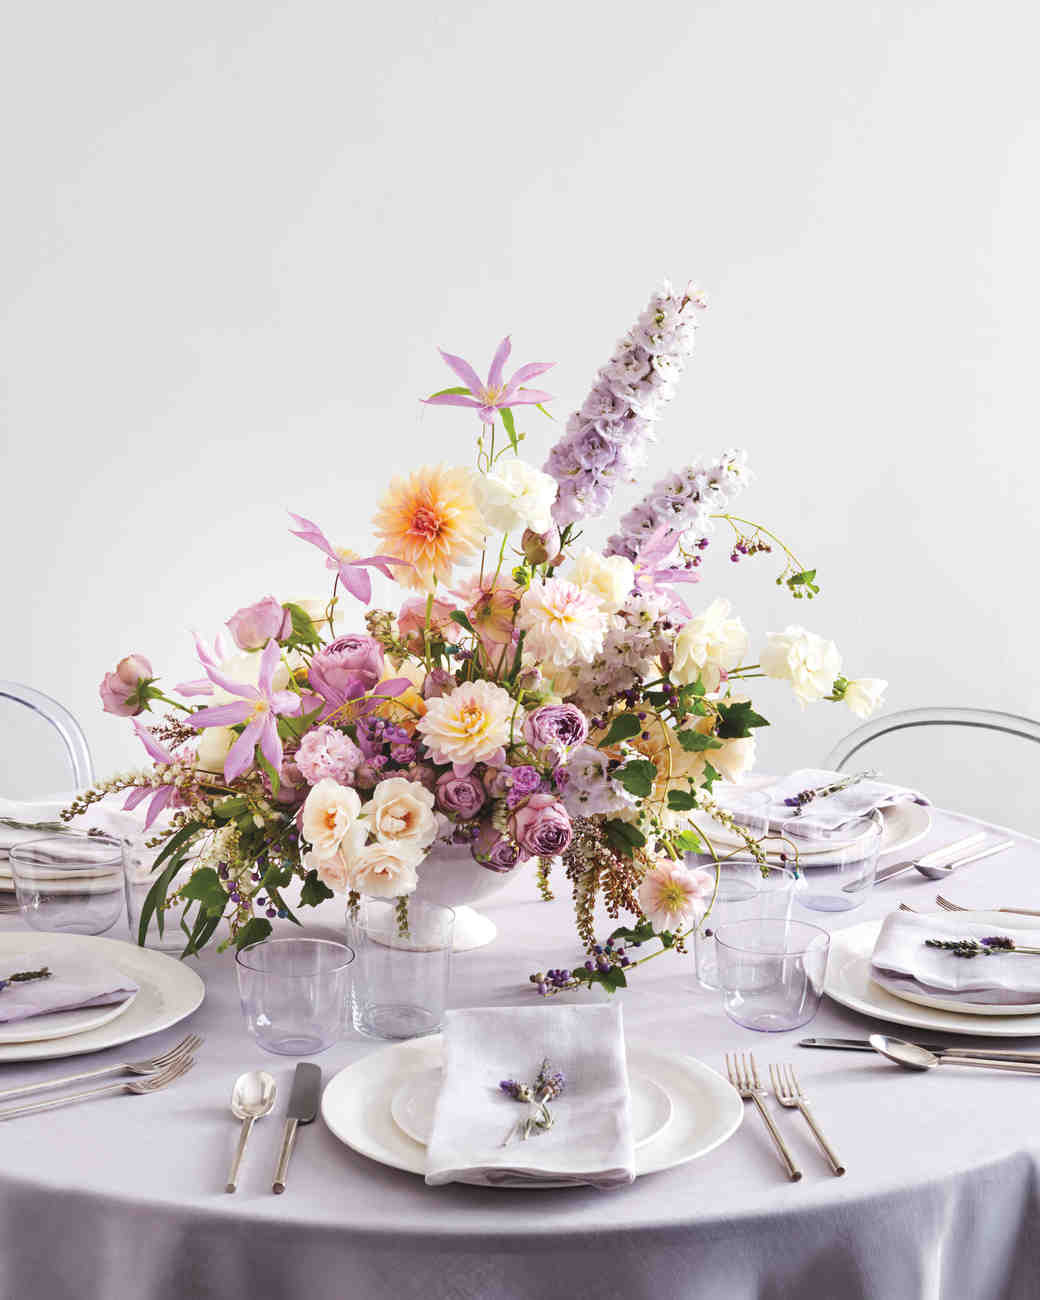 Best ideas about DIY Centerpiece Wedding . Save or Pin 23 DIY Wedding Centerpieces We Love Now.